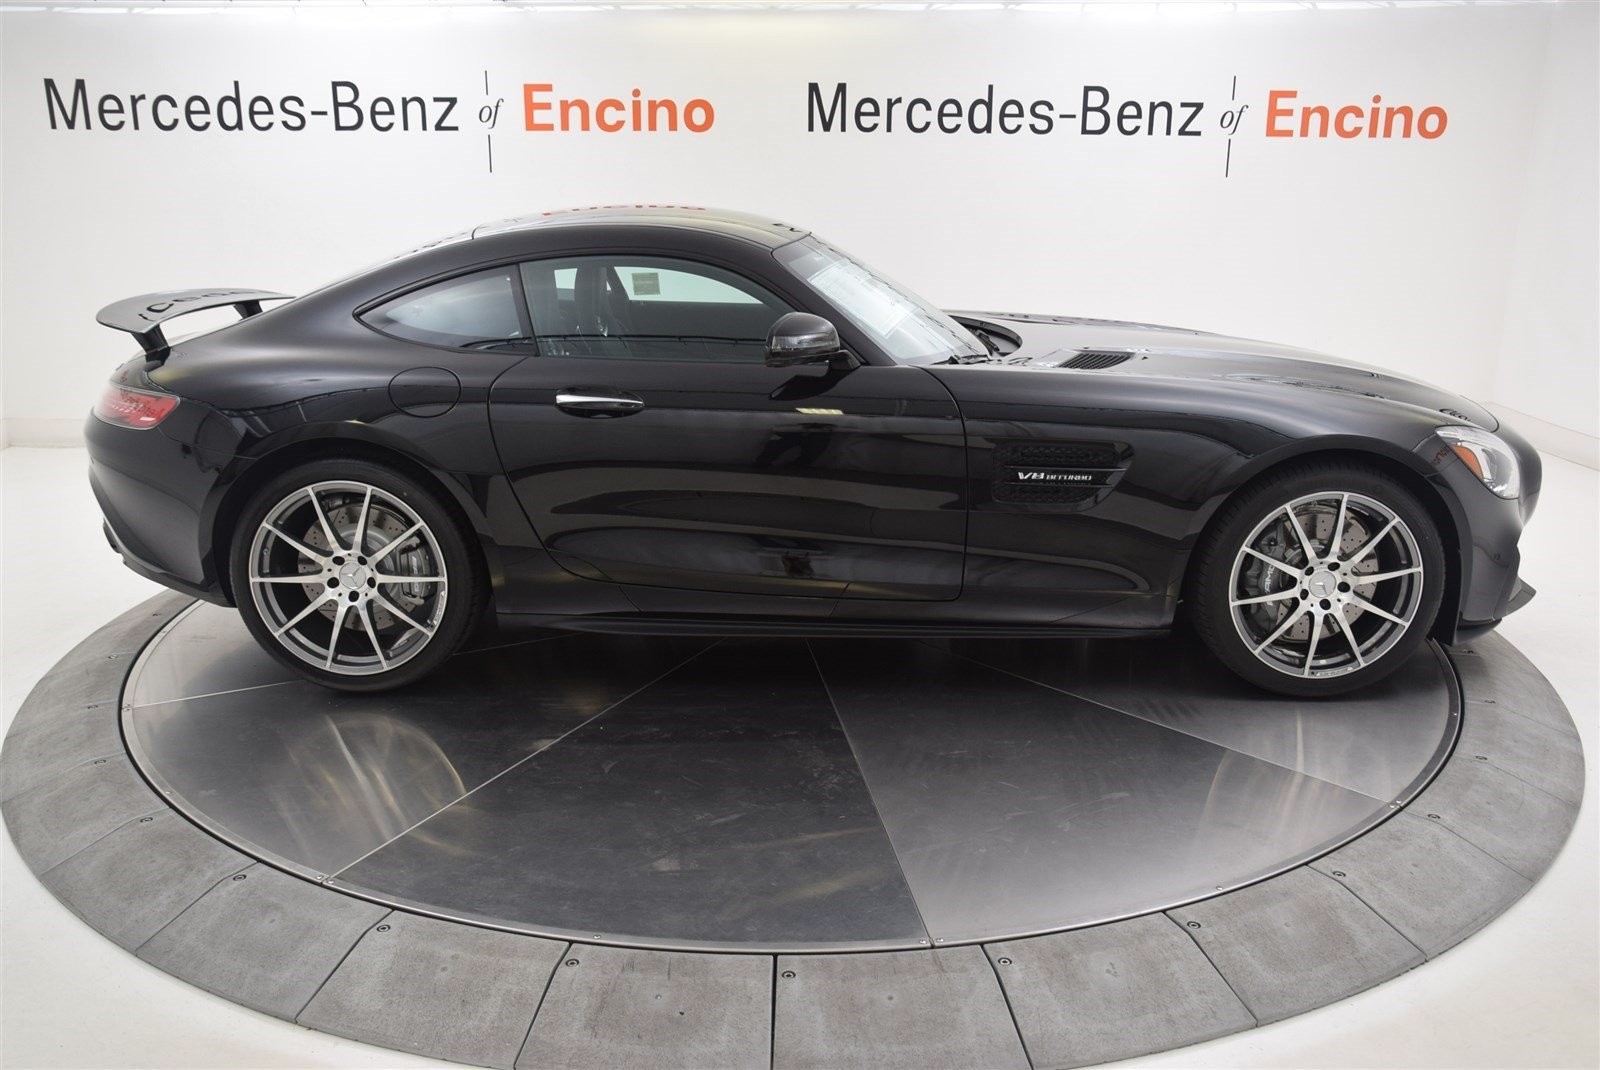 New 2017 mercedes benz amg gt amg gt coupe coupe in for 2017 mercedes benz amg gt msrp